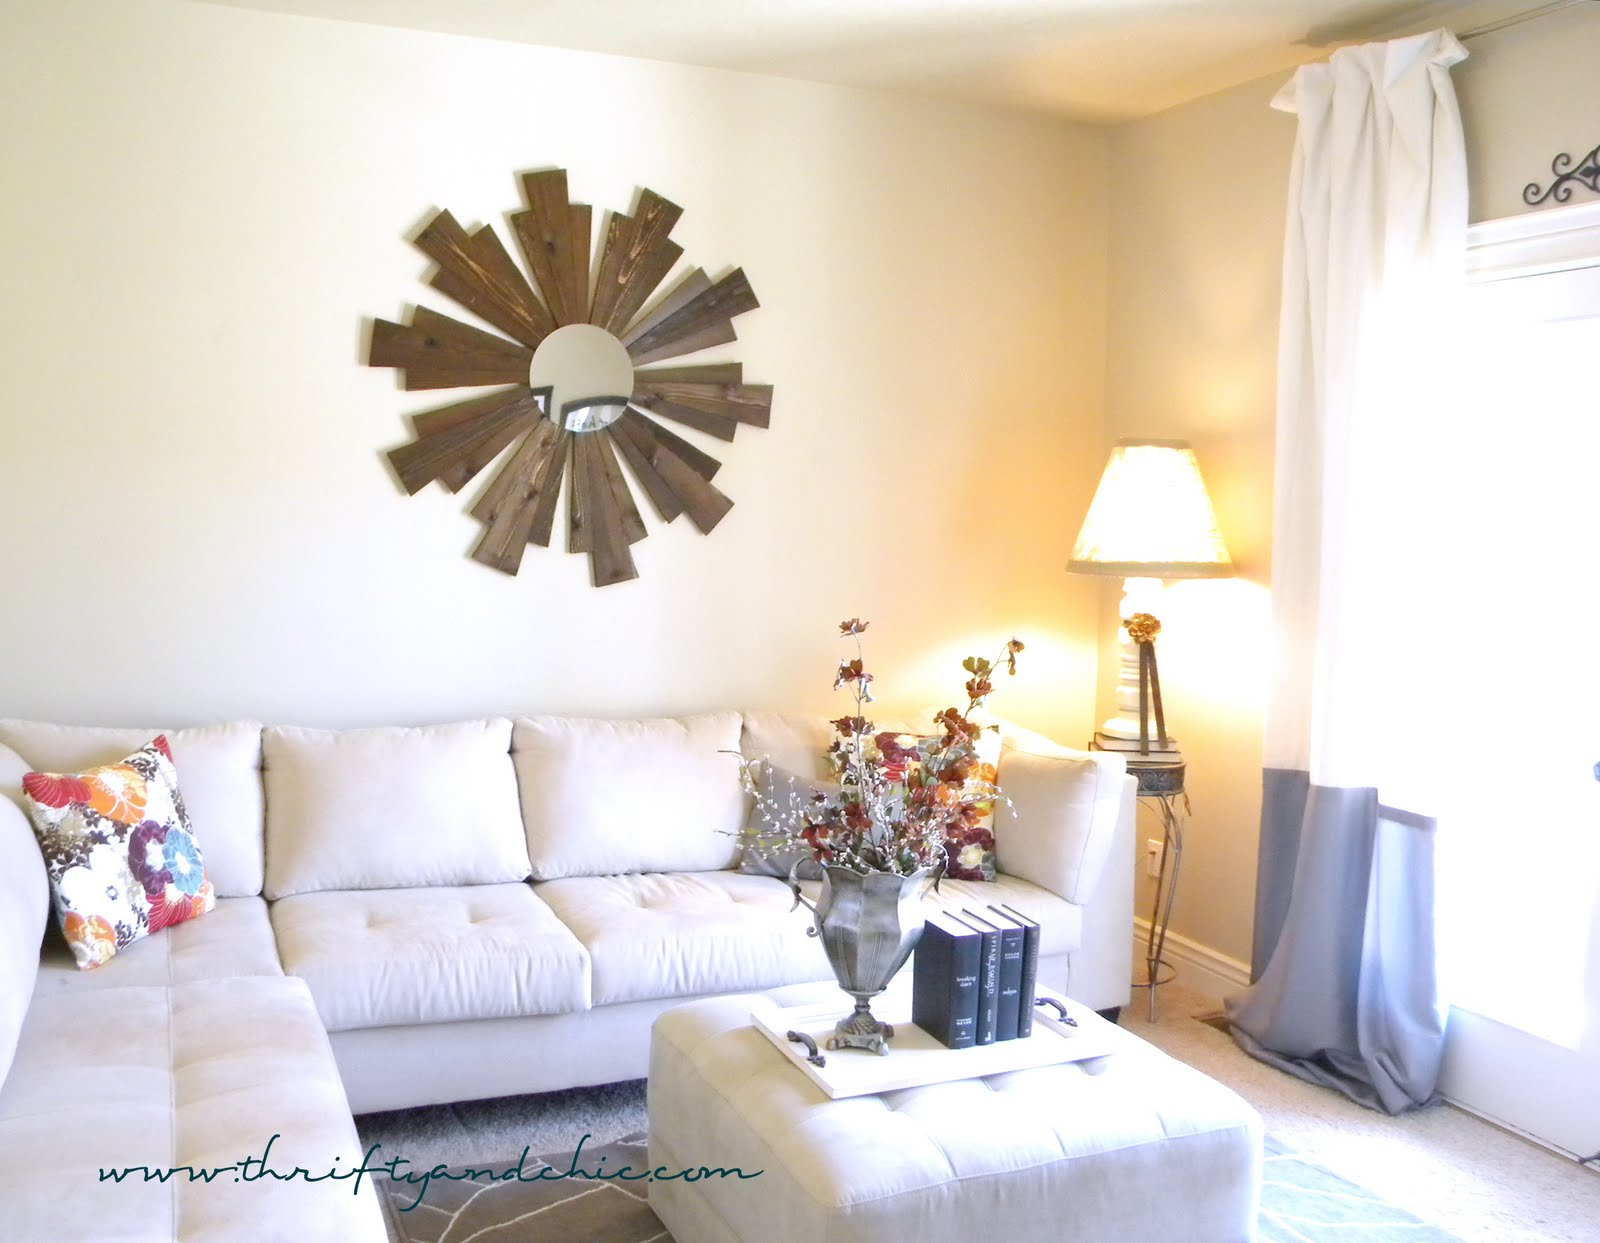 Beautiful wooden sunburst mirror in a simplistic living room